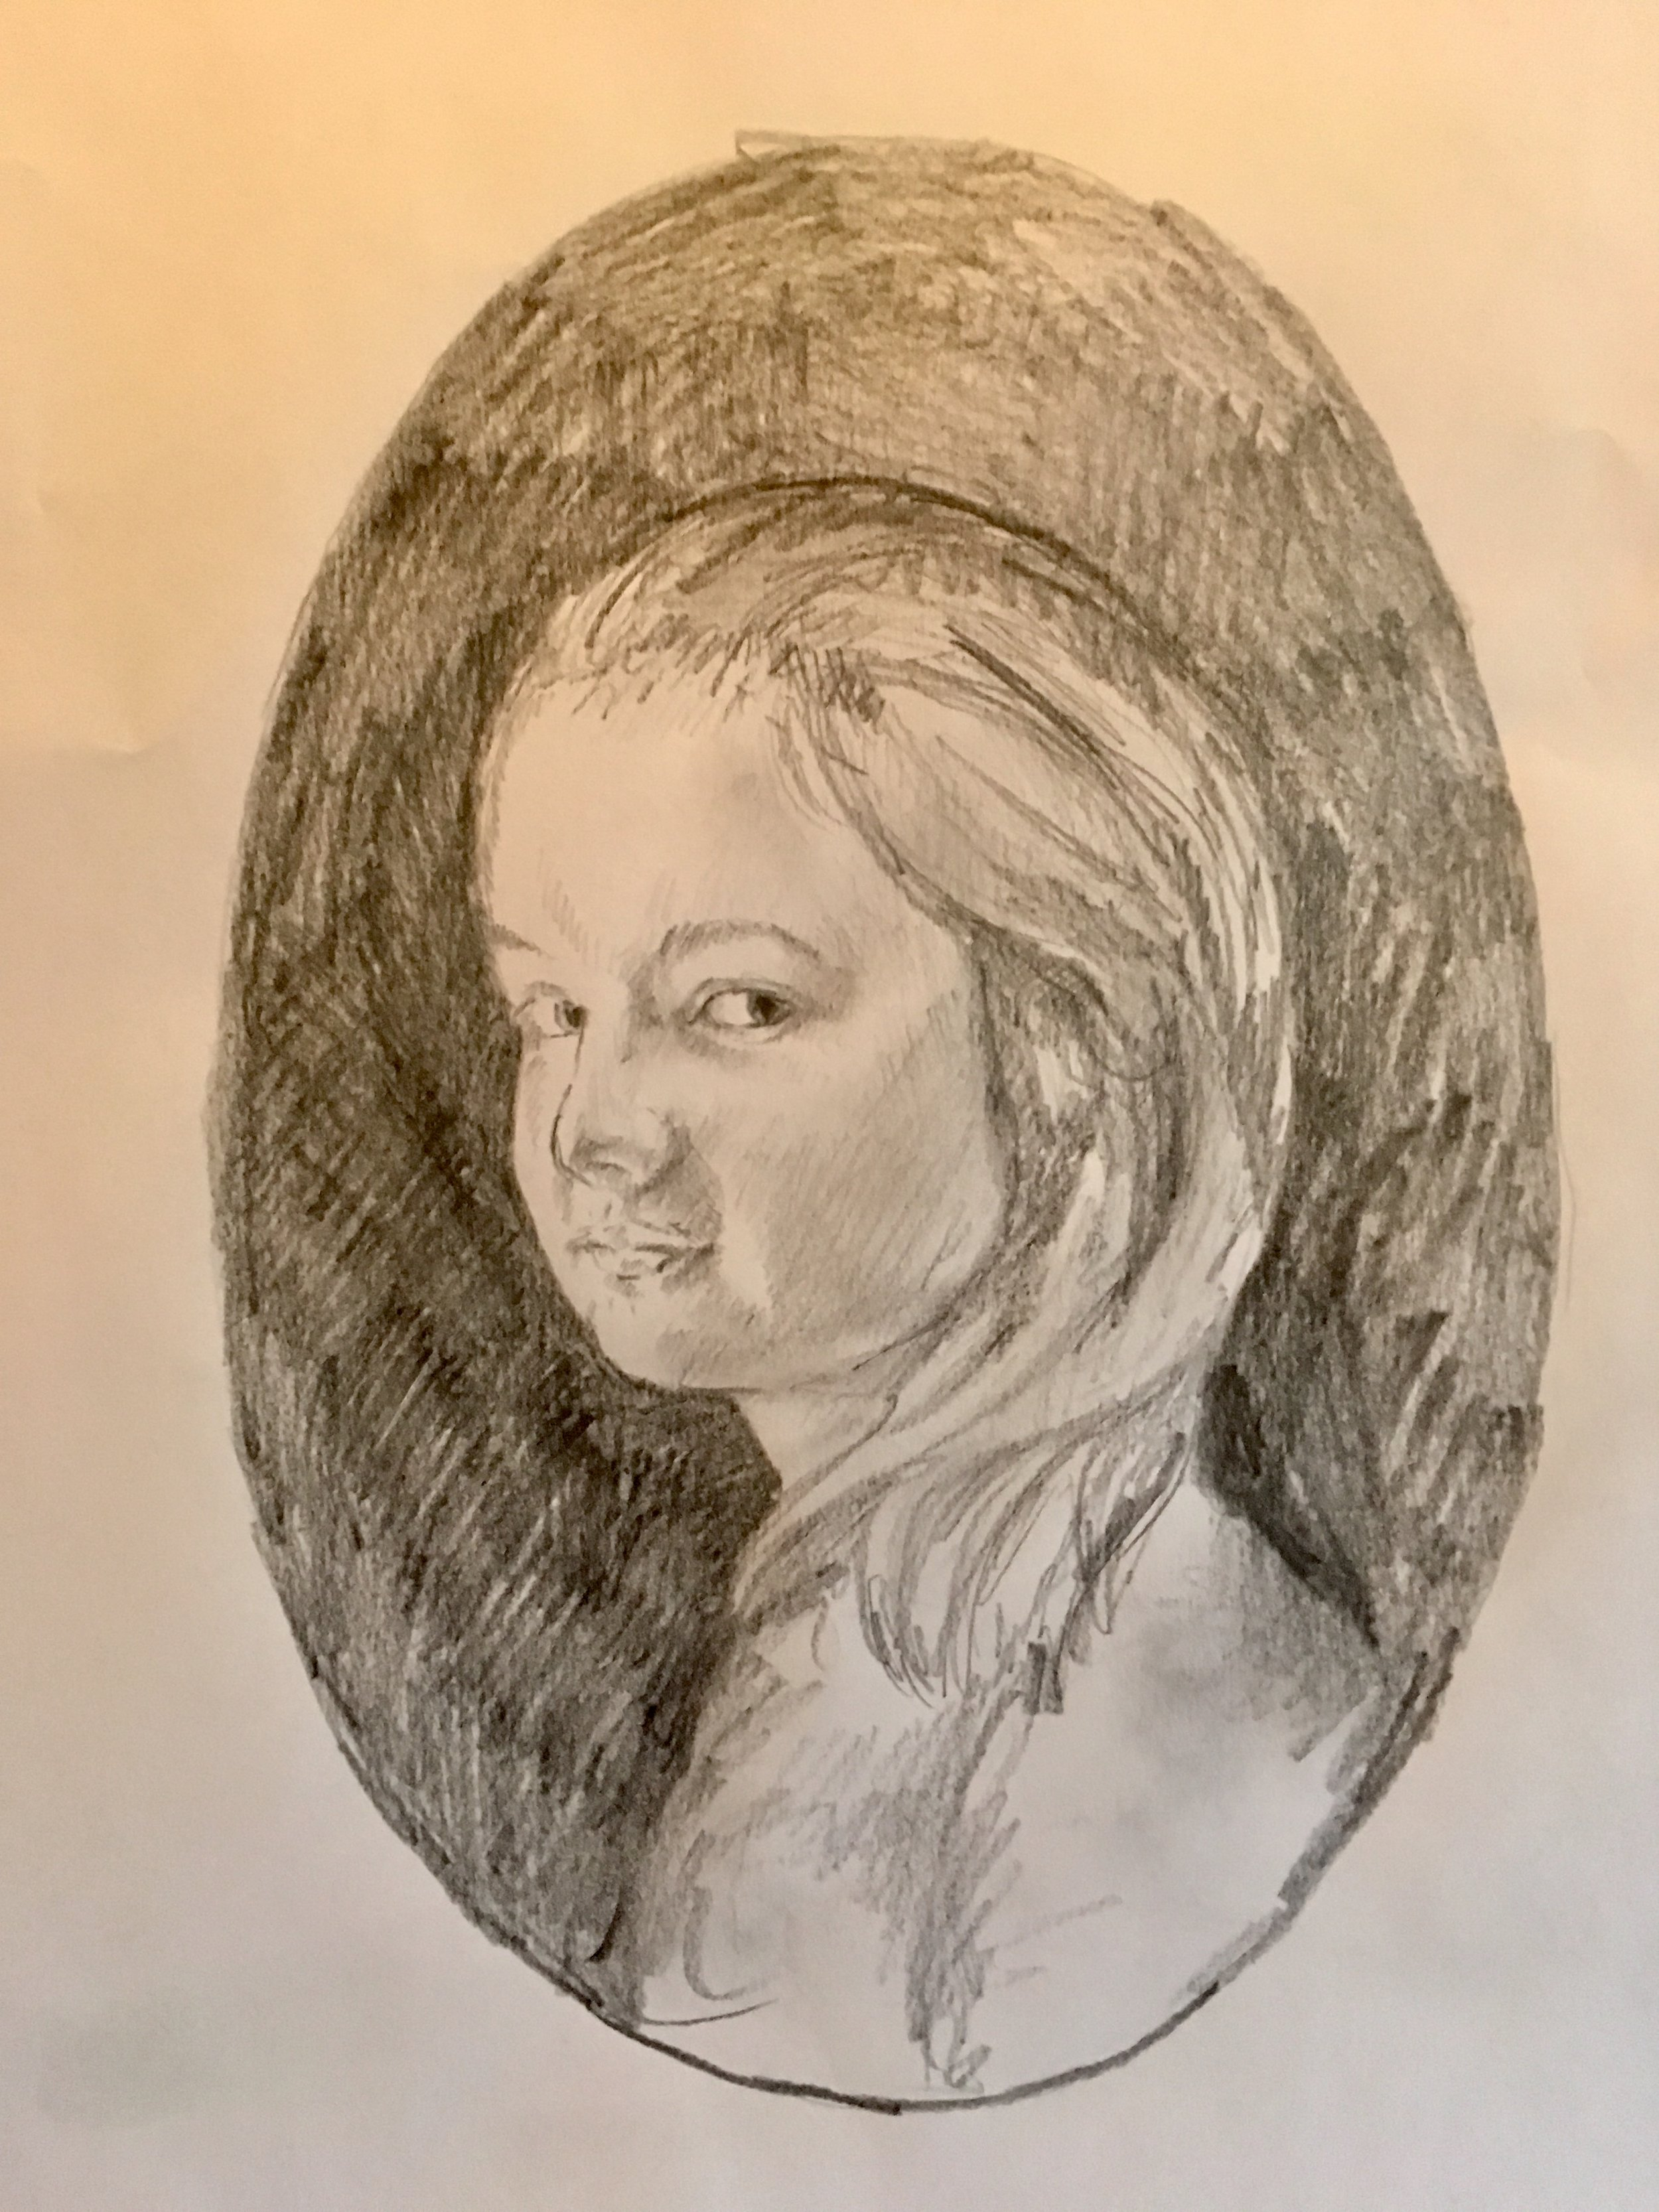 The initial Pencil Sketch